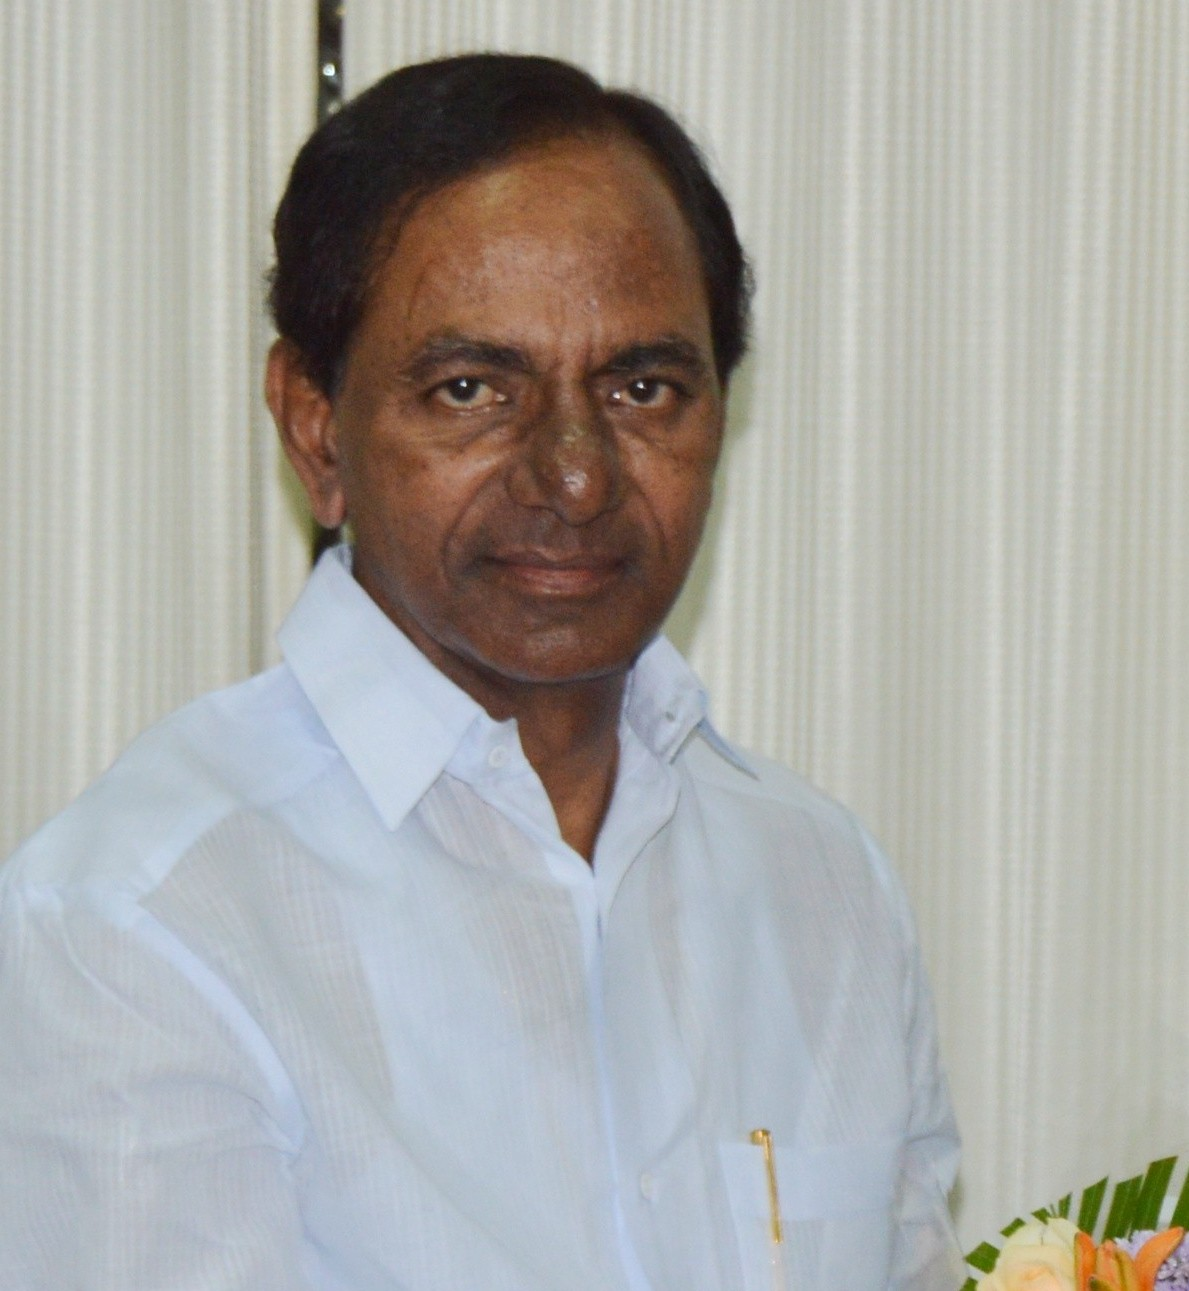 KCR Relents, Bandh not Called Off